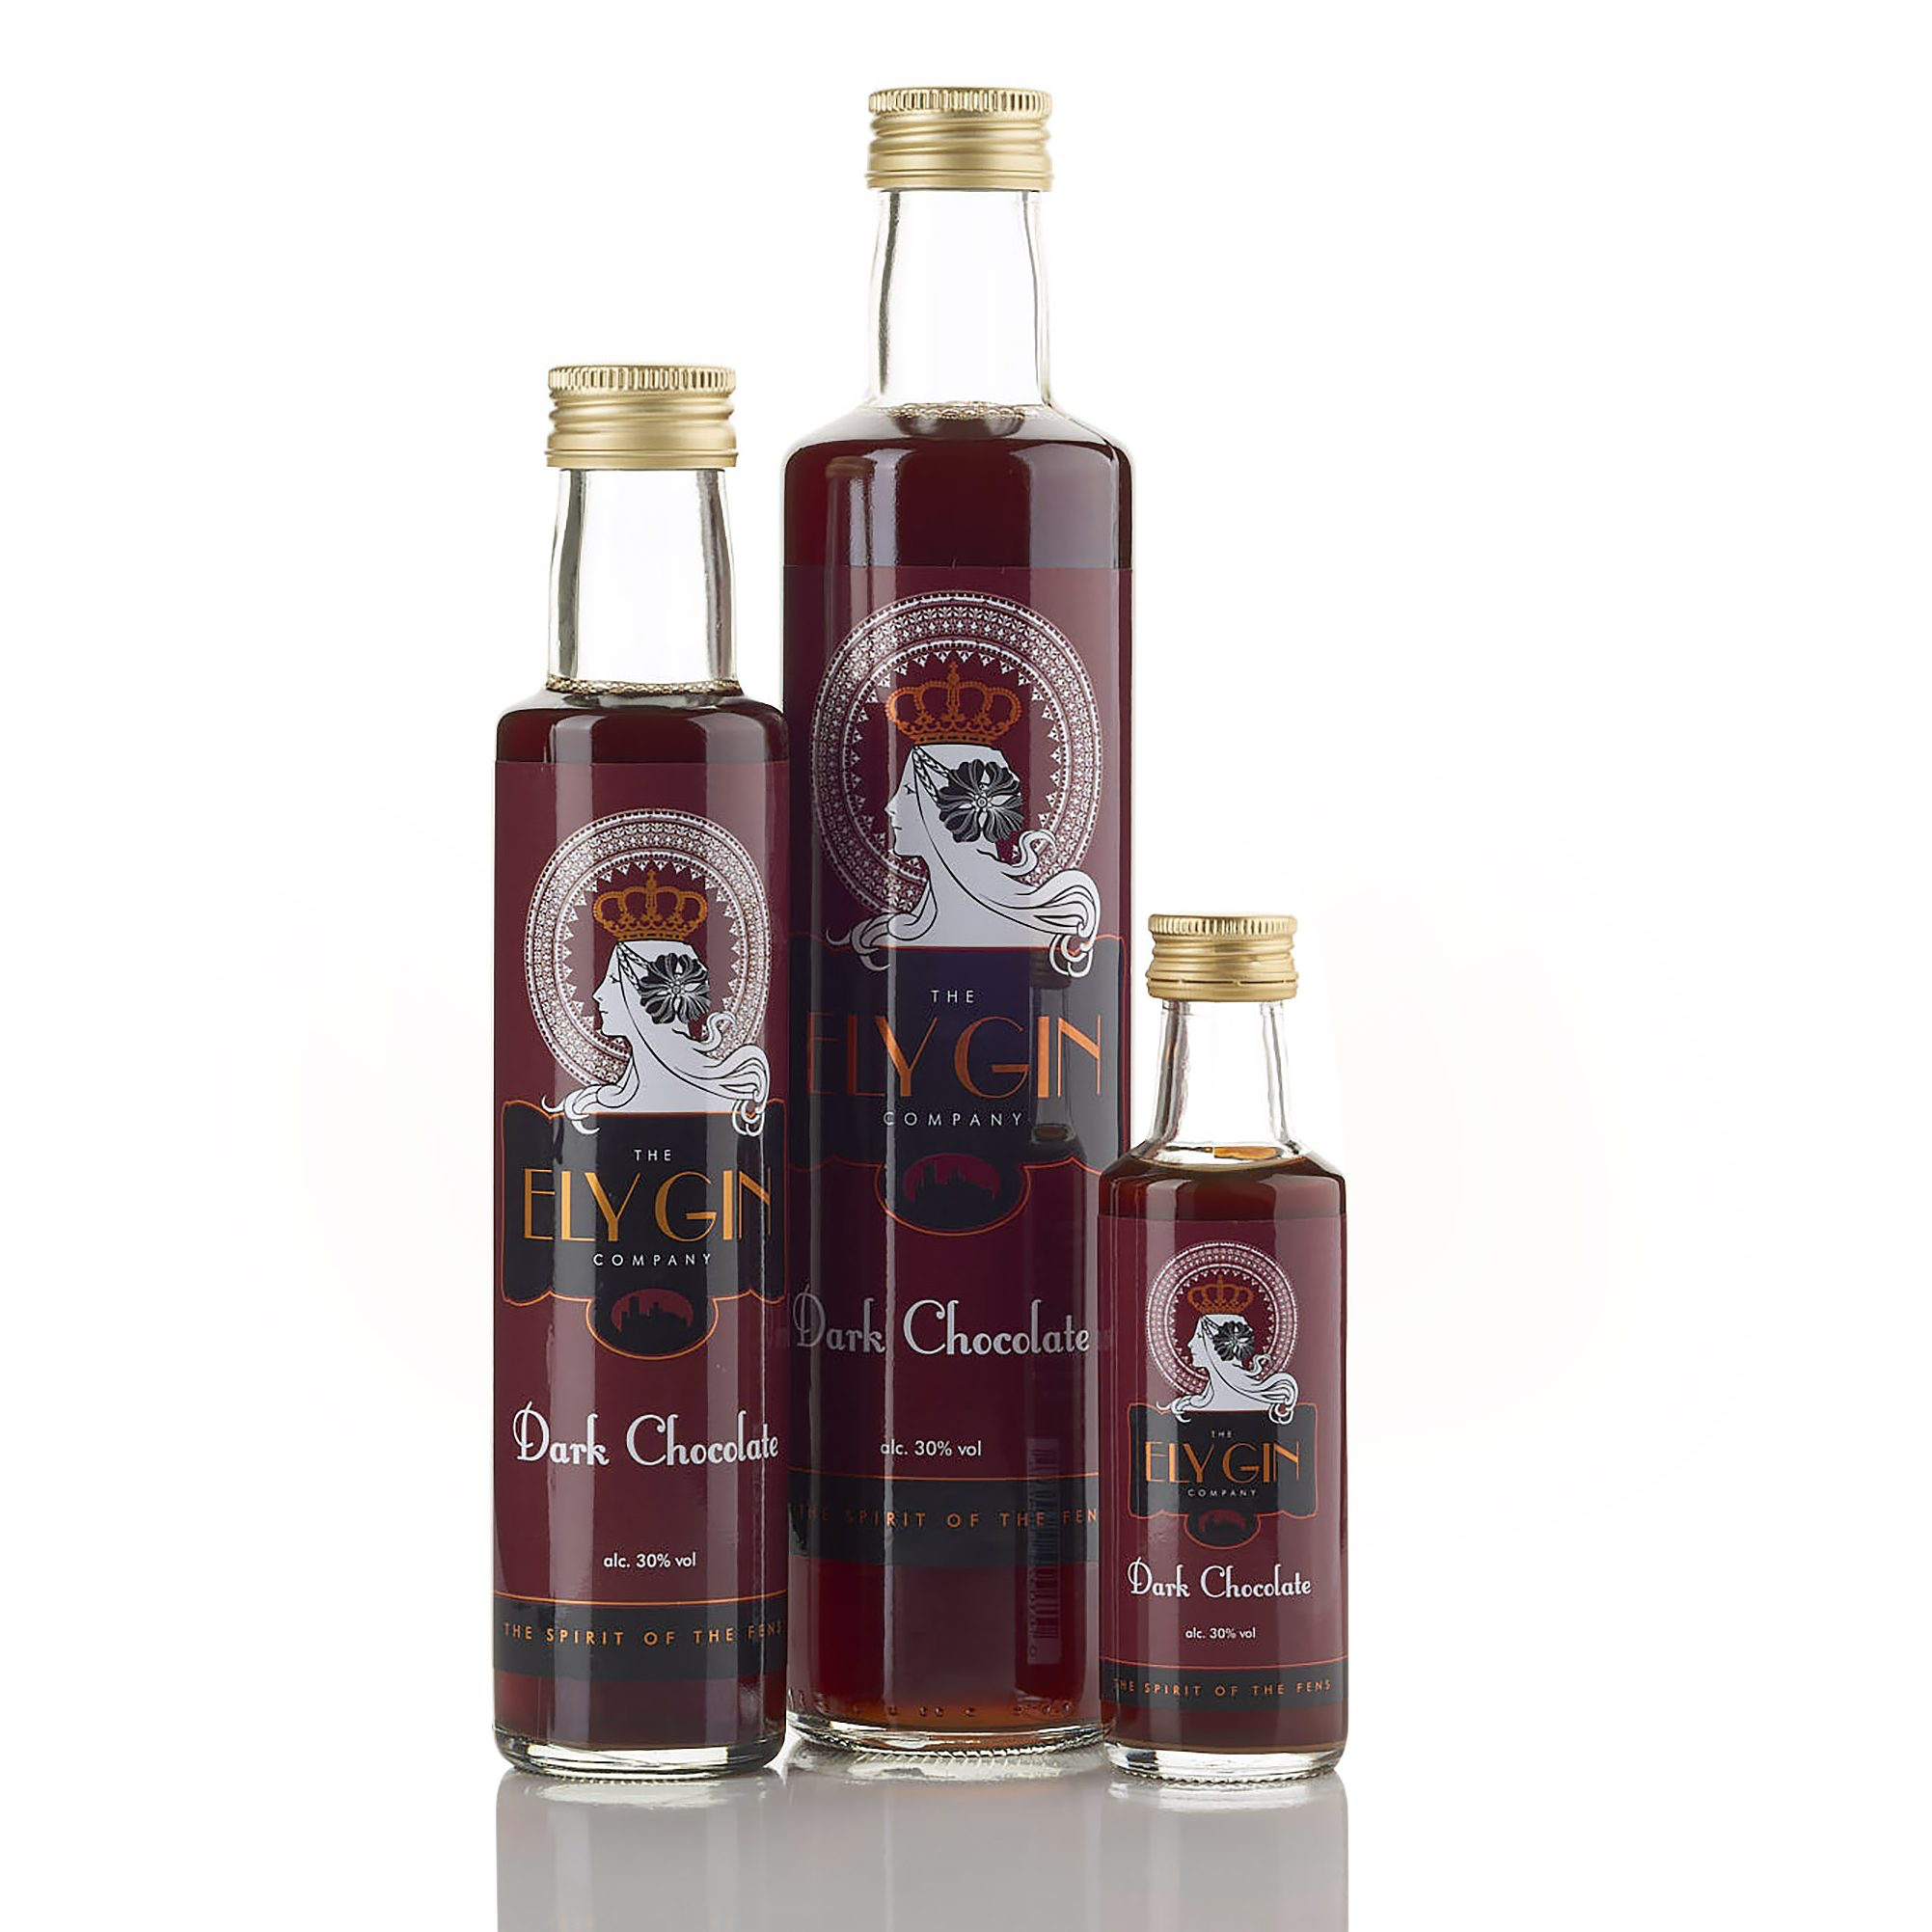 Ely Gin with Dark Chocolate 30% 100ml, 250ml & 500ml